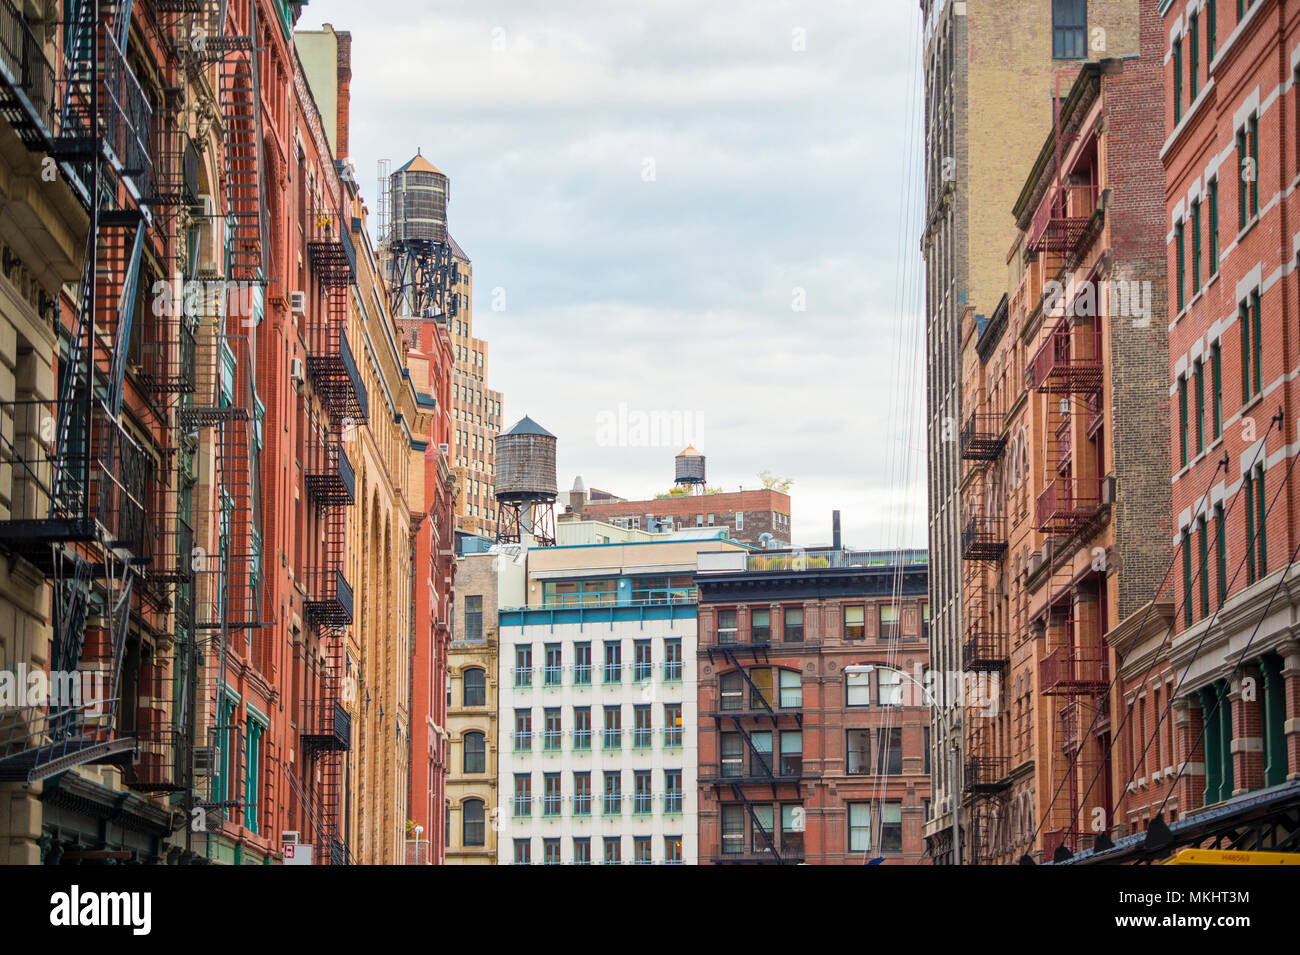 Close Up View Of New York City Style Apartment Buildings With Emergency  Stairs Along Mott Street In The Chinatown Neighborhood Of Manhattan NYC.